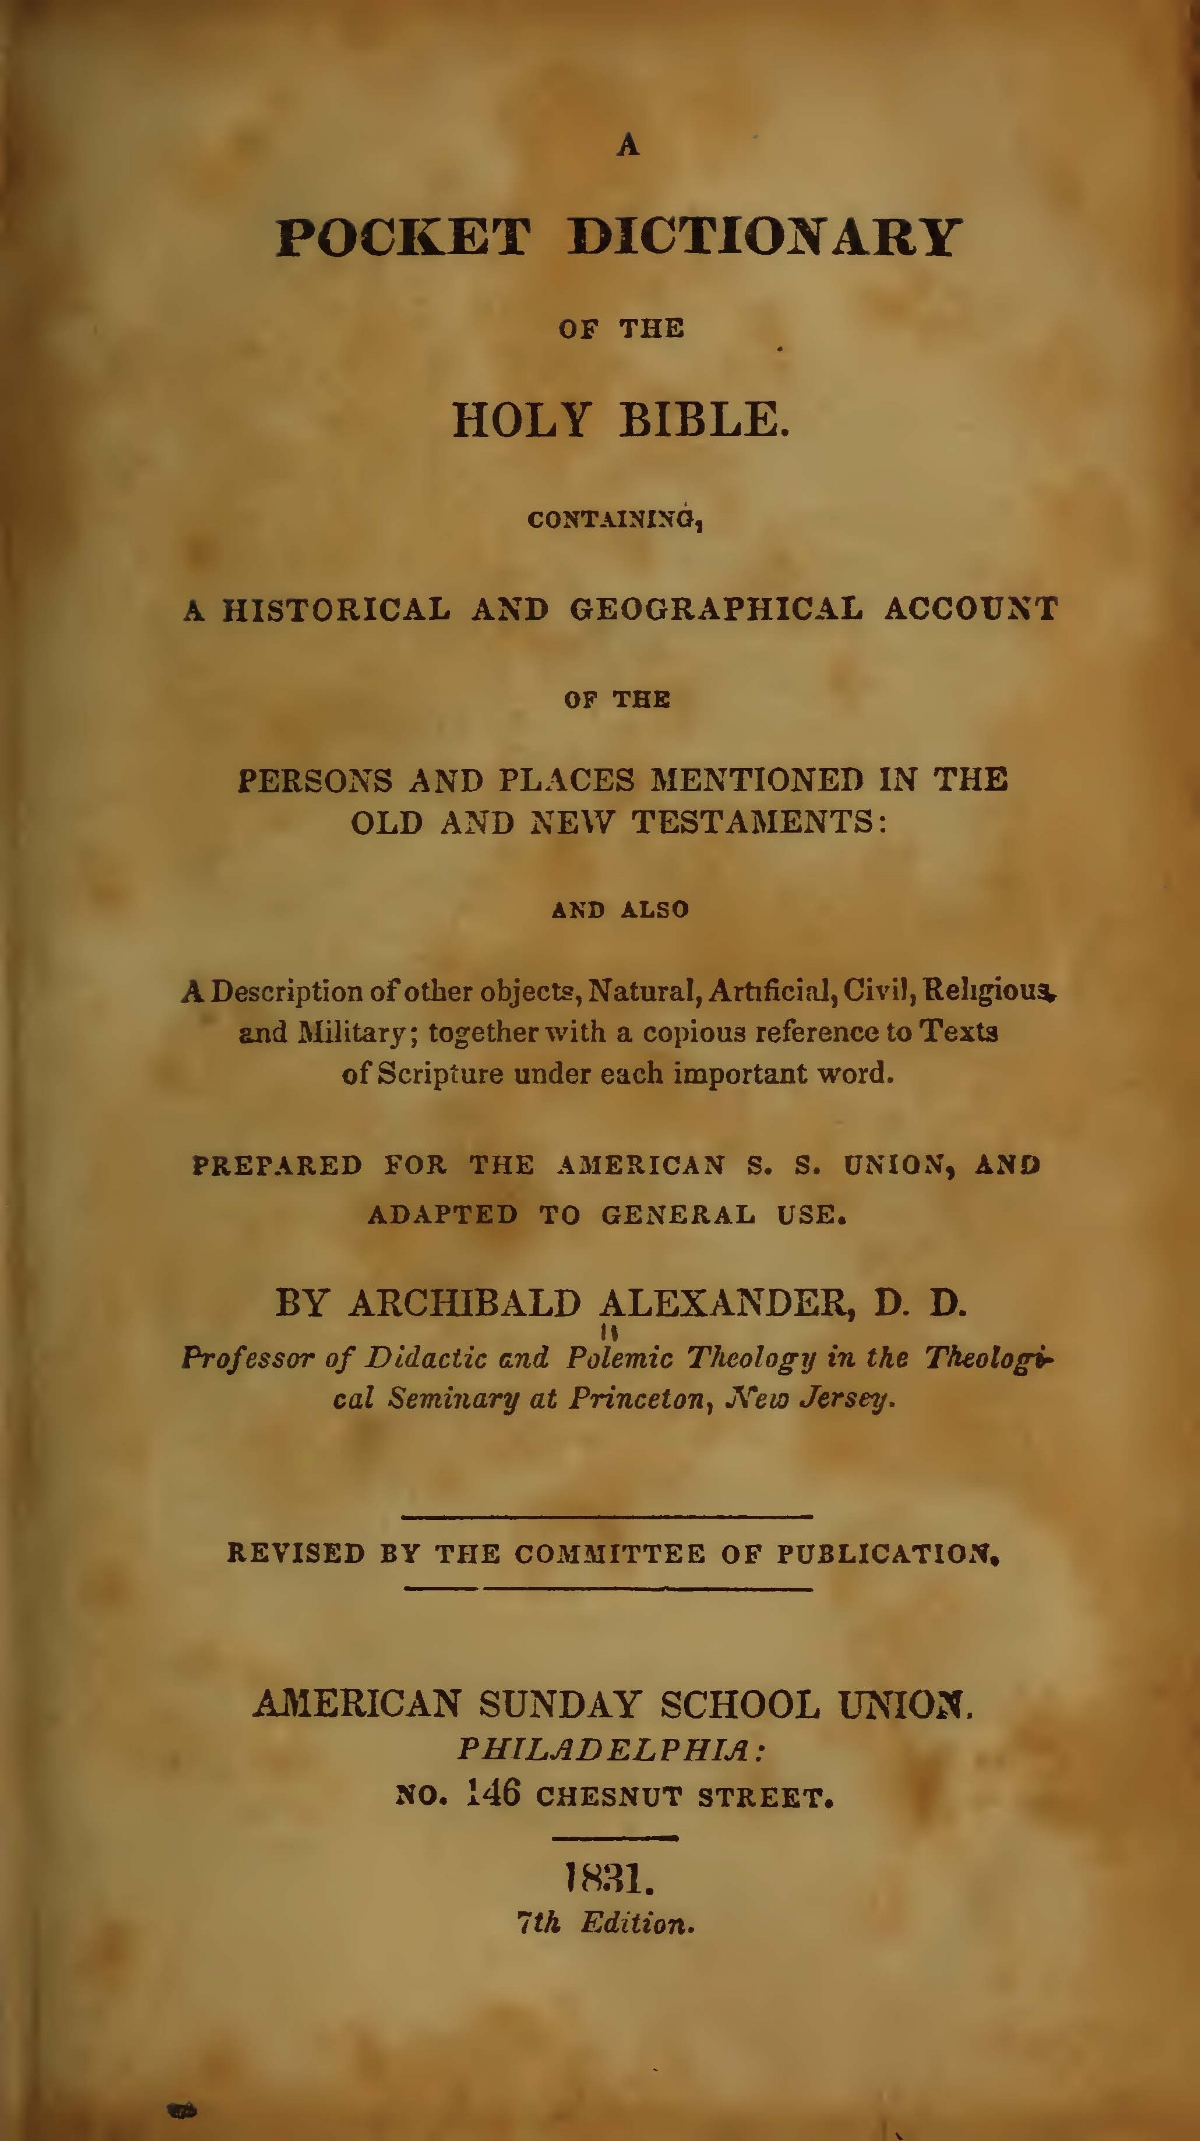 Alexander, Archibald, A Pocket Dictionary of the Holy Bible Title Page.jpg